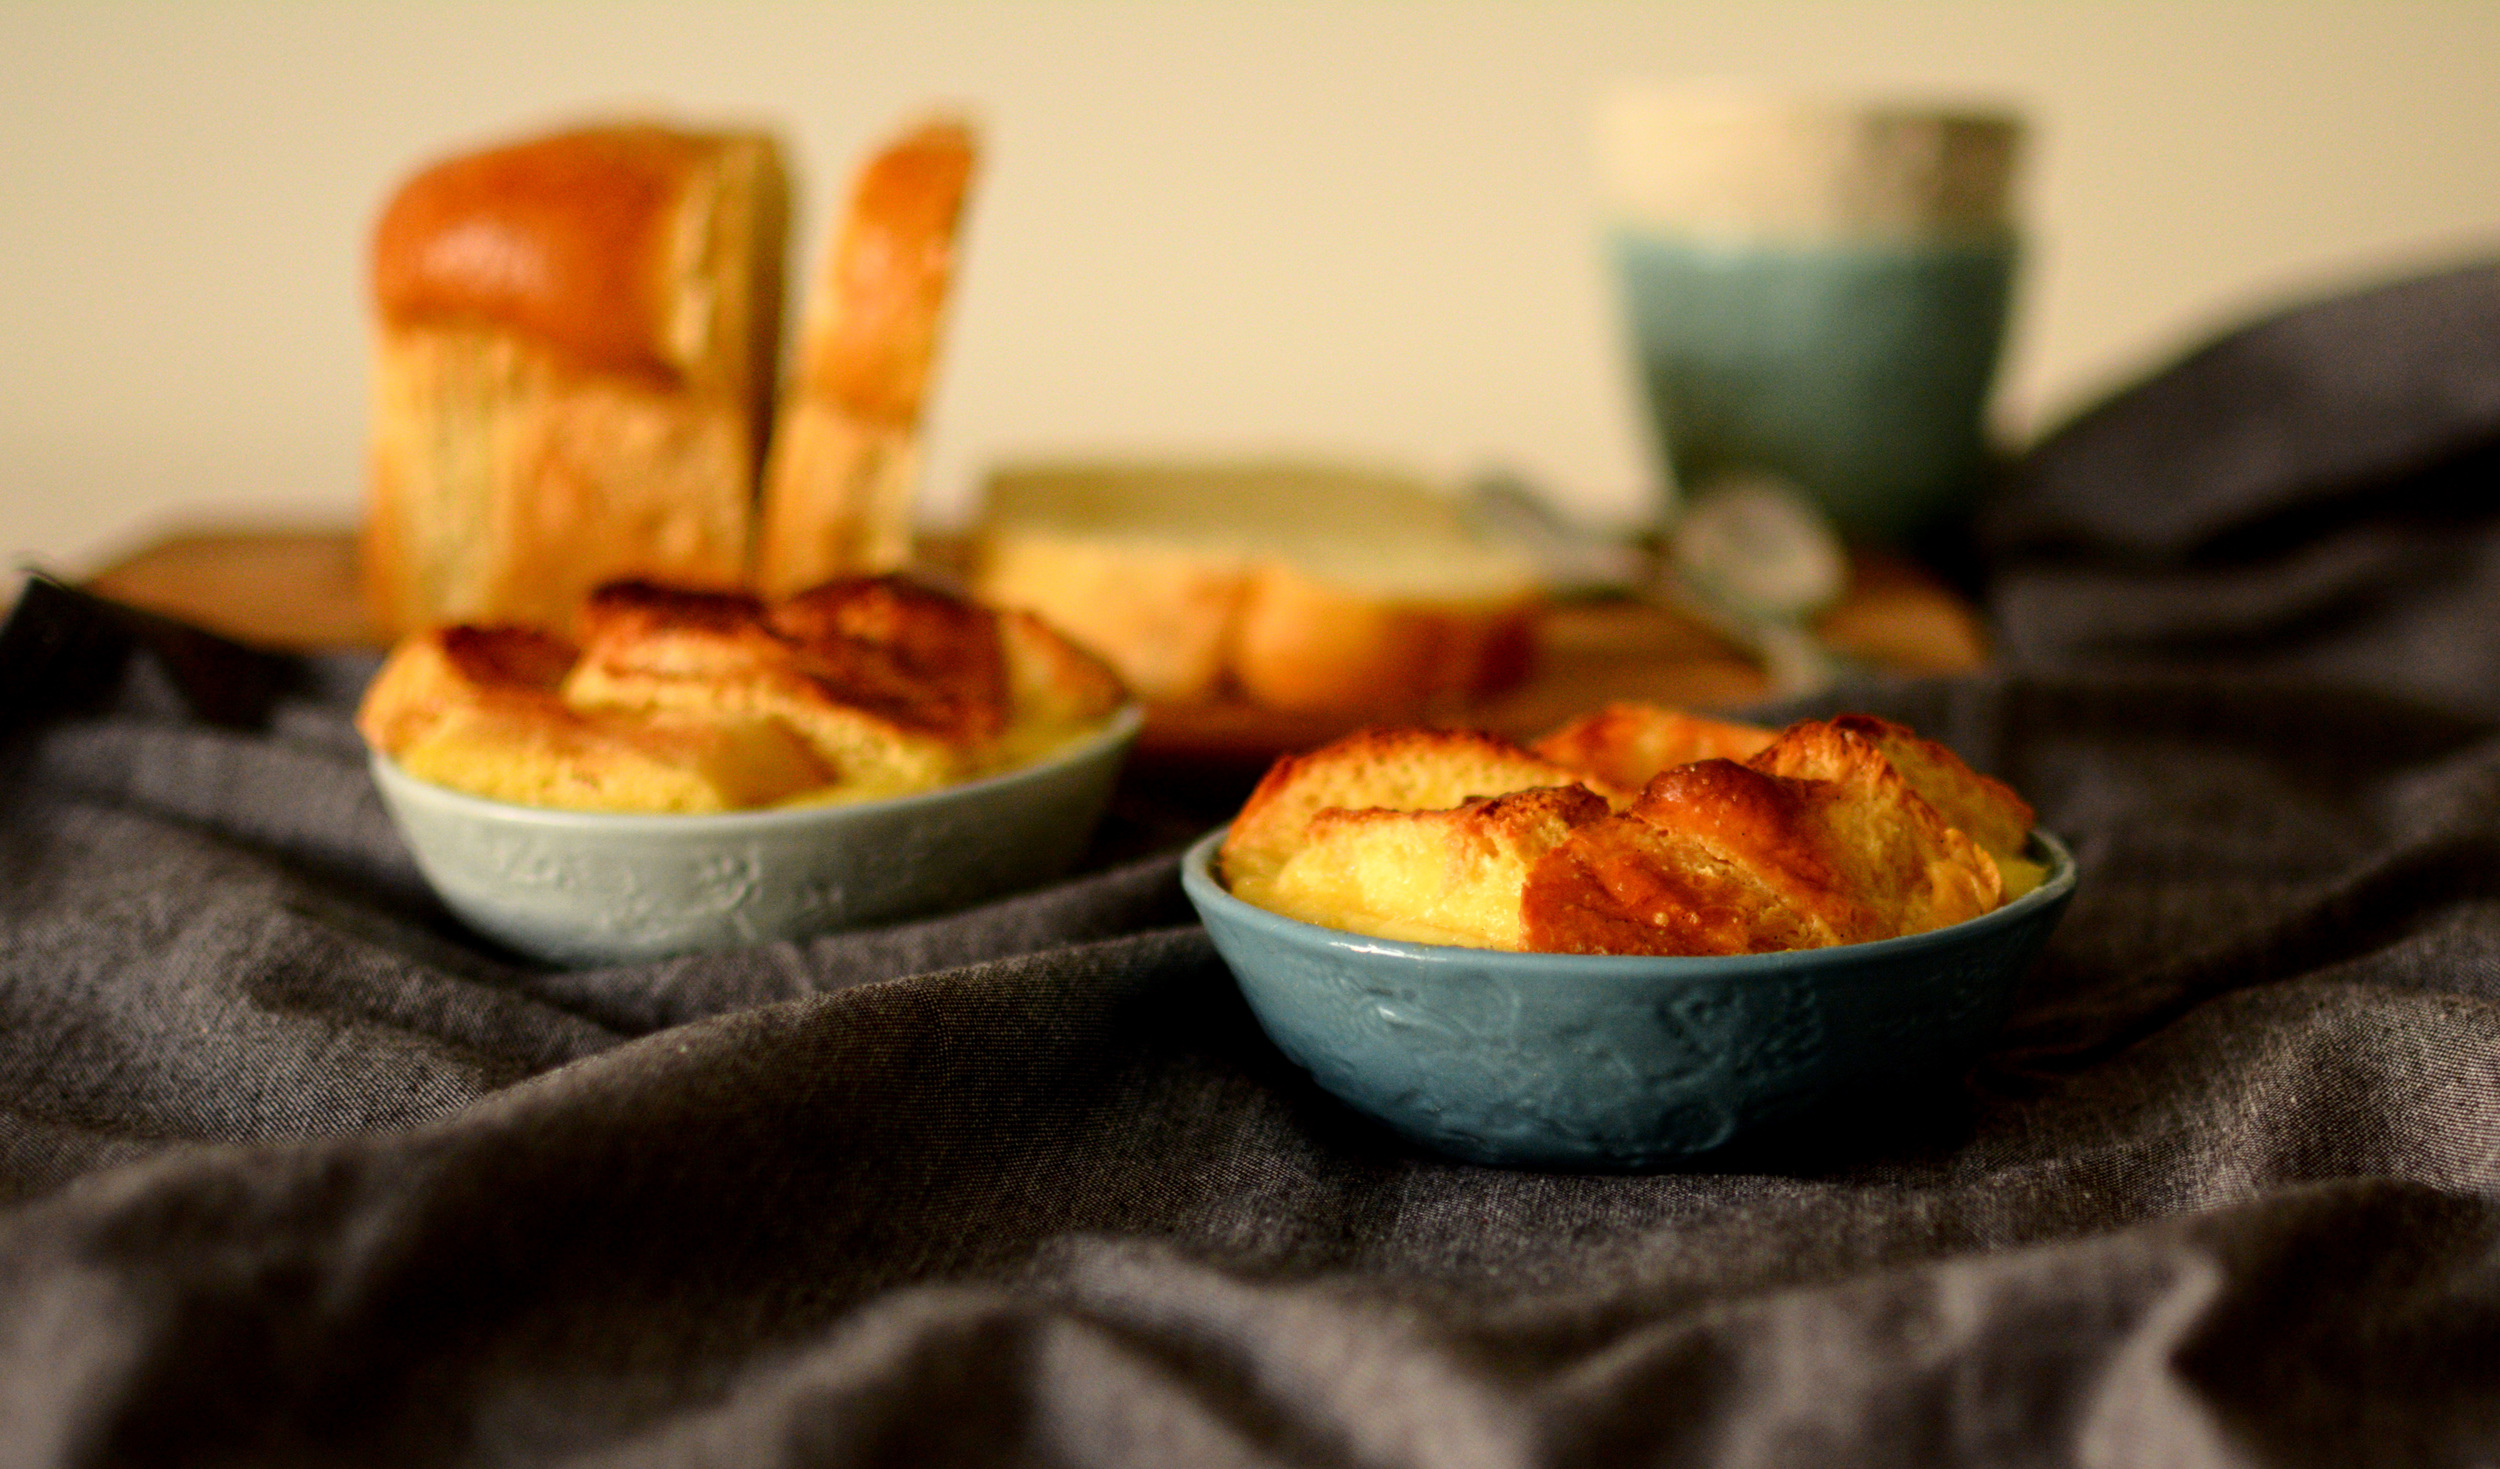 Bread and Butter Pudding baked in a Nibble bowl